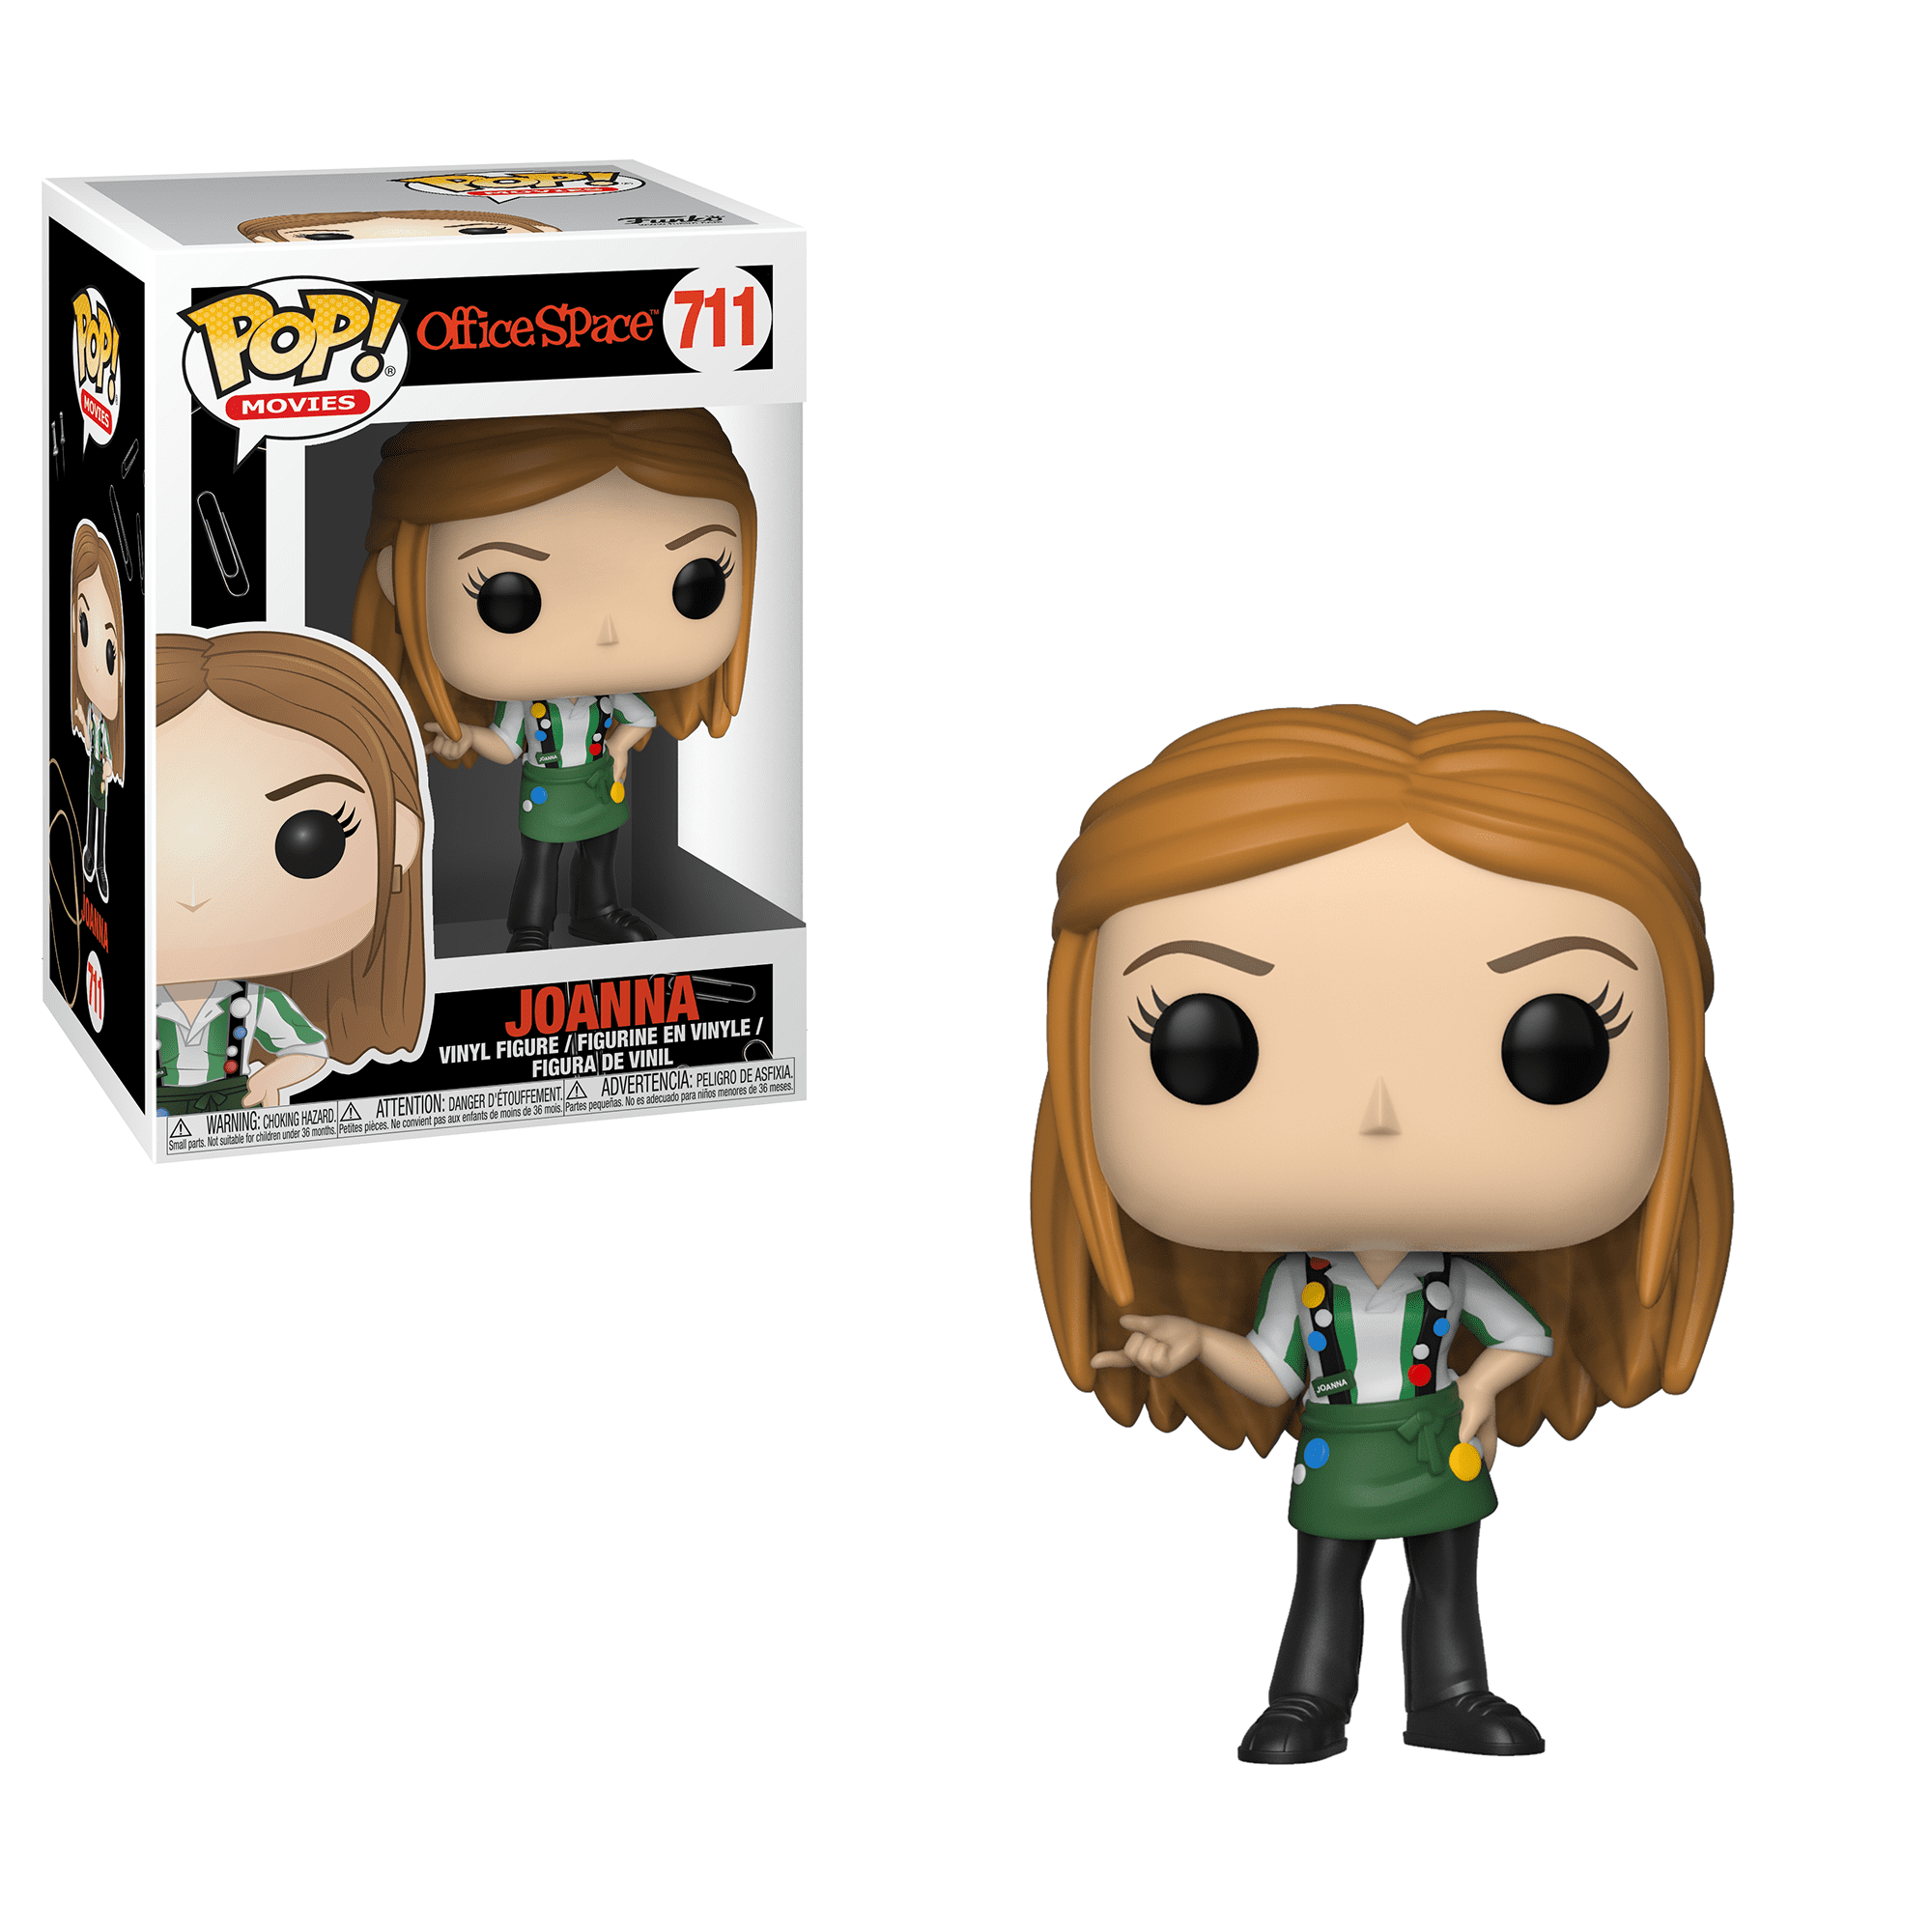 Funko POP! Movies Office Space: Joanna (with Flair), Vinyl Figure